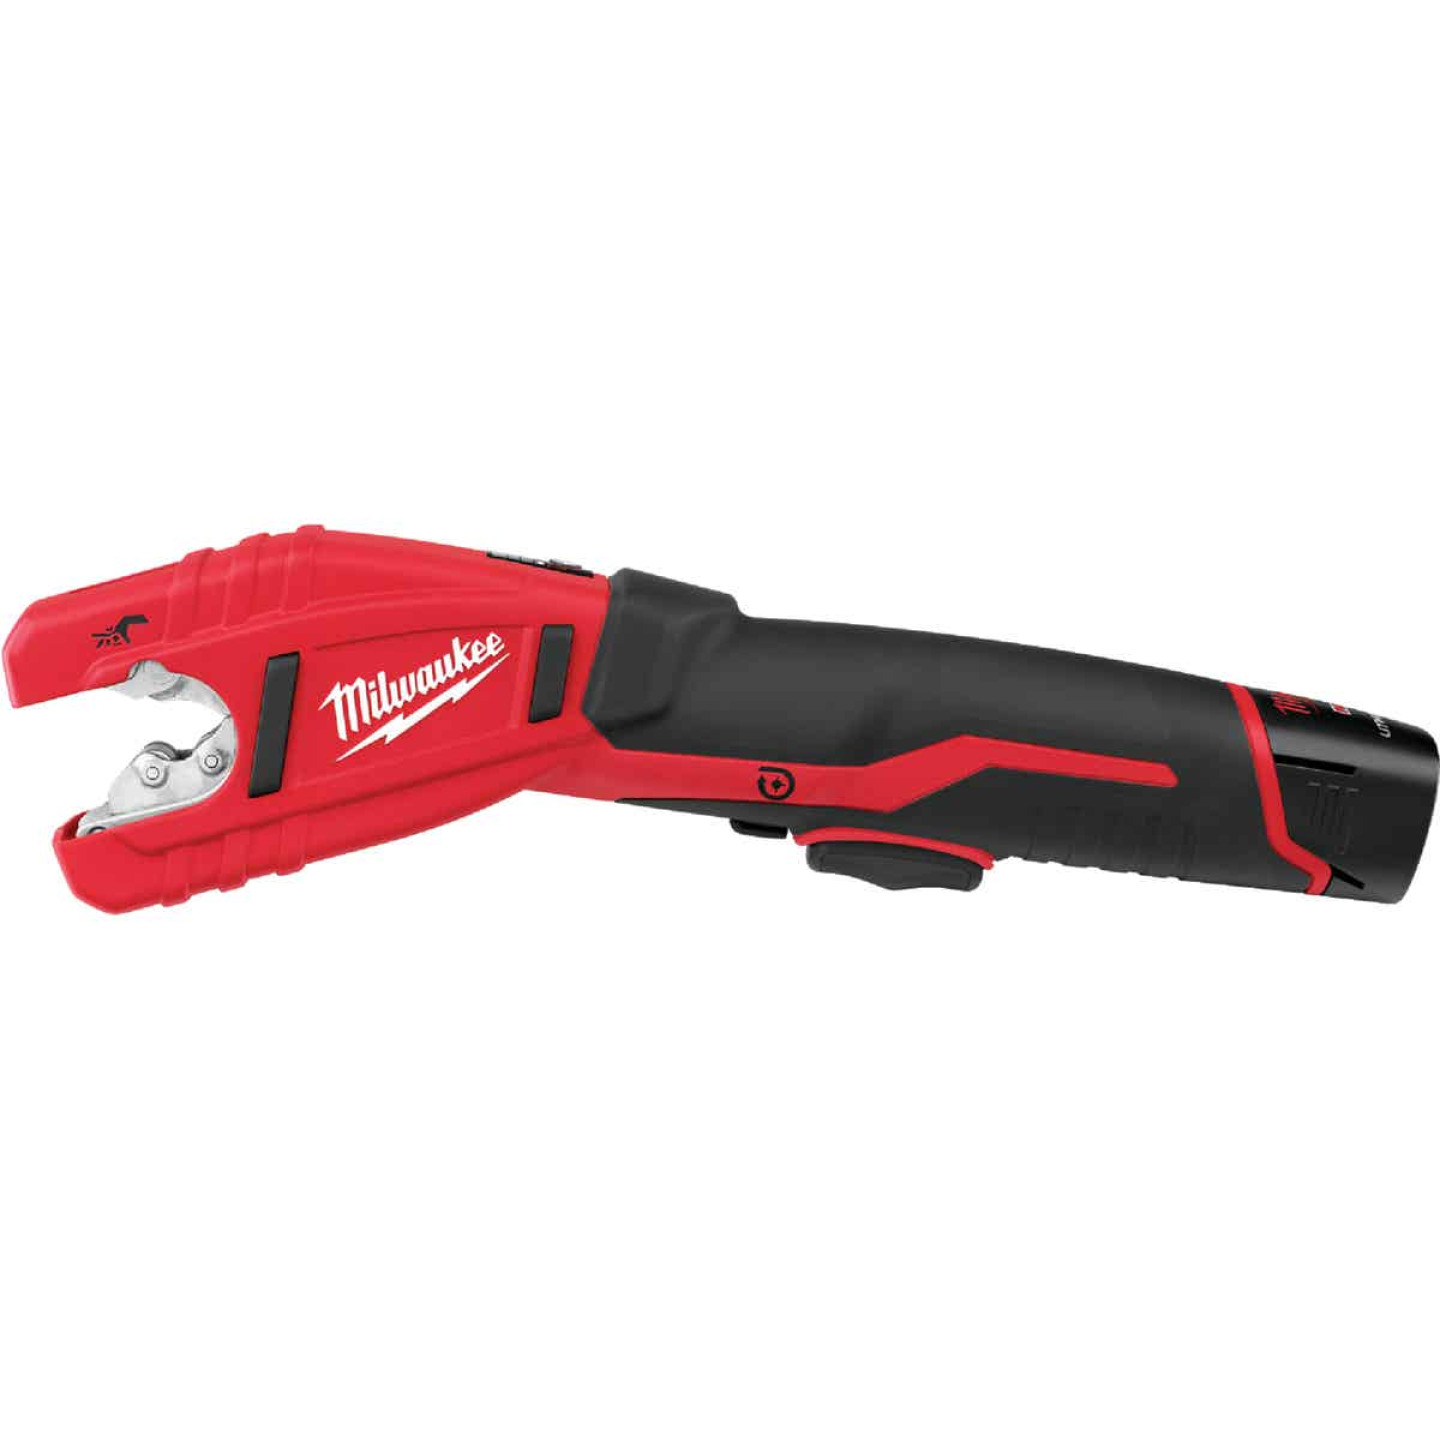 Milwaukee M12 12 Volt Lithium-Ion Copper Cordless Pipe Cutter Kit Image 7